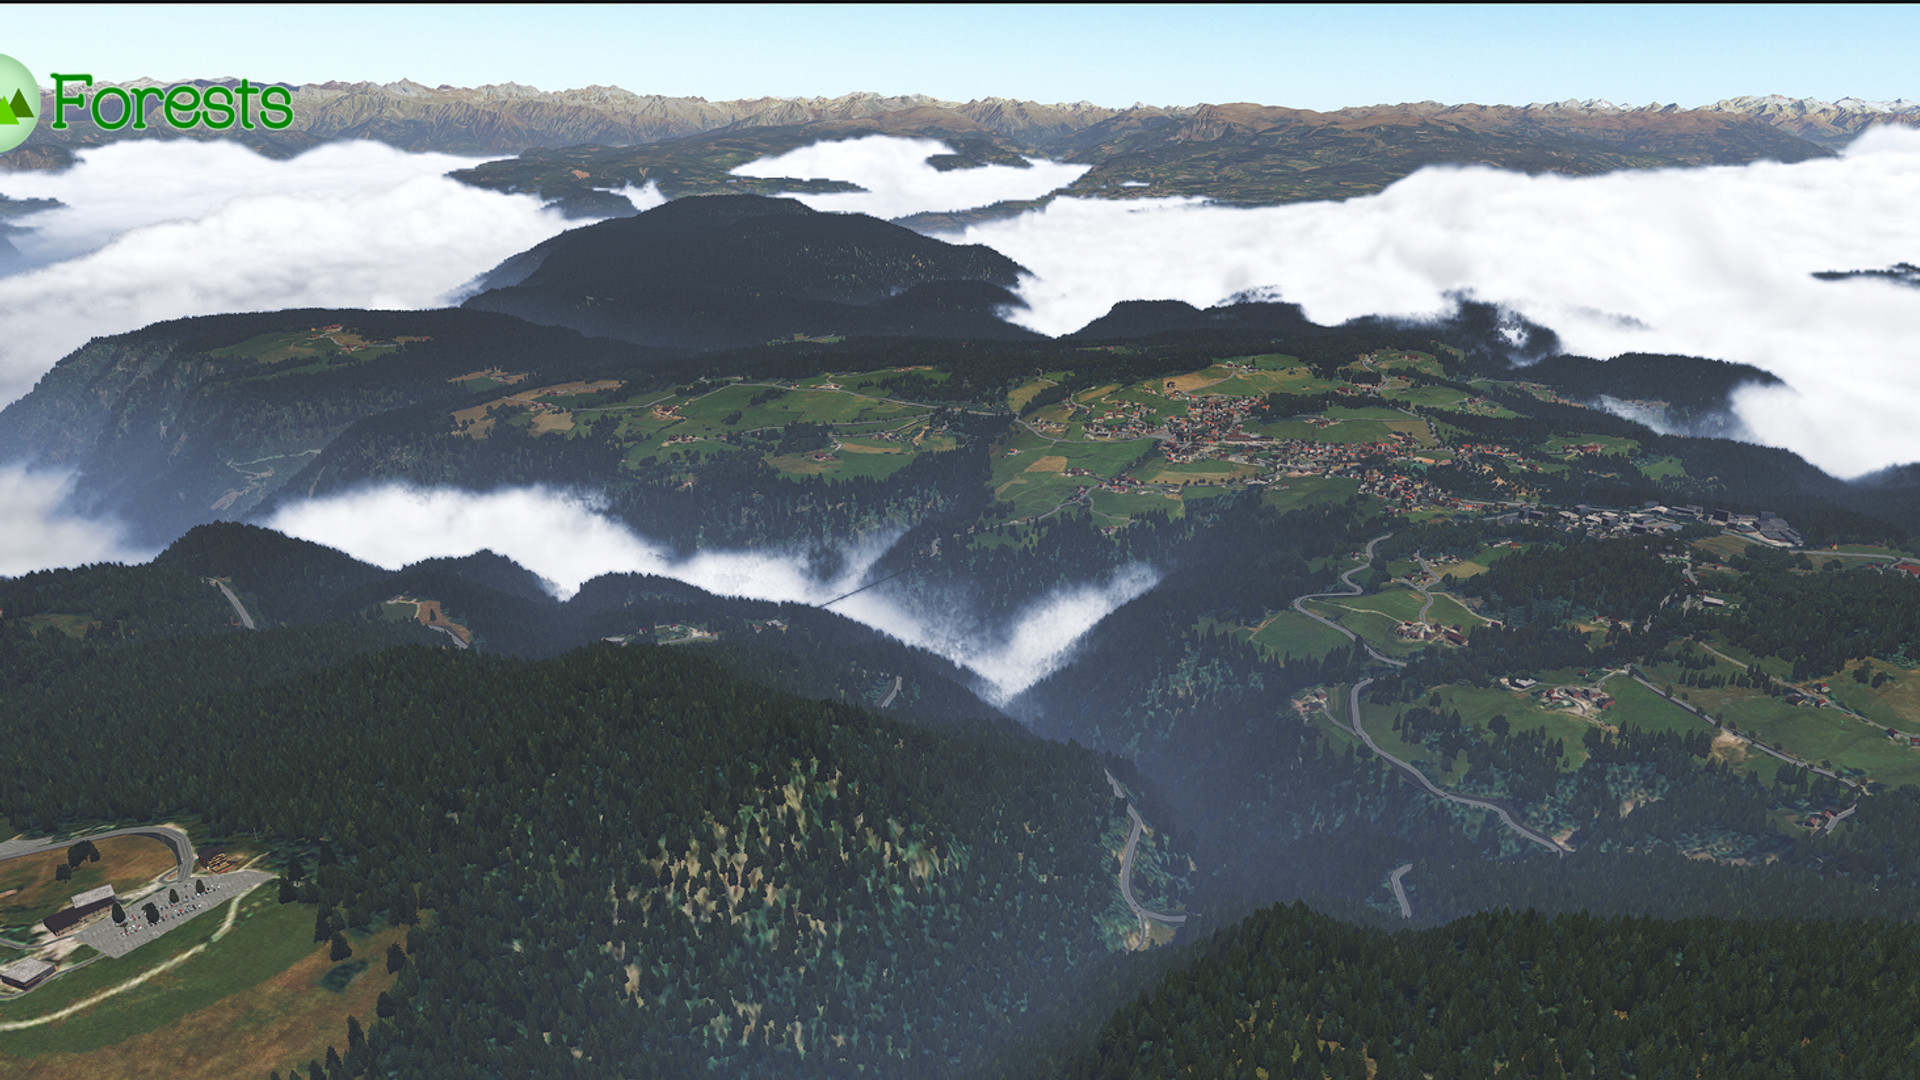 Global_Forests_Alps2.jpg